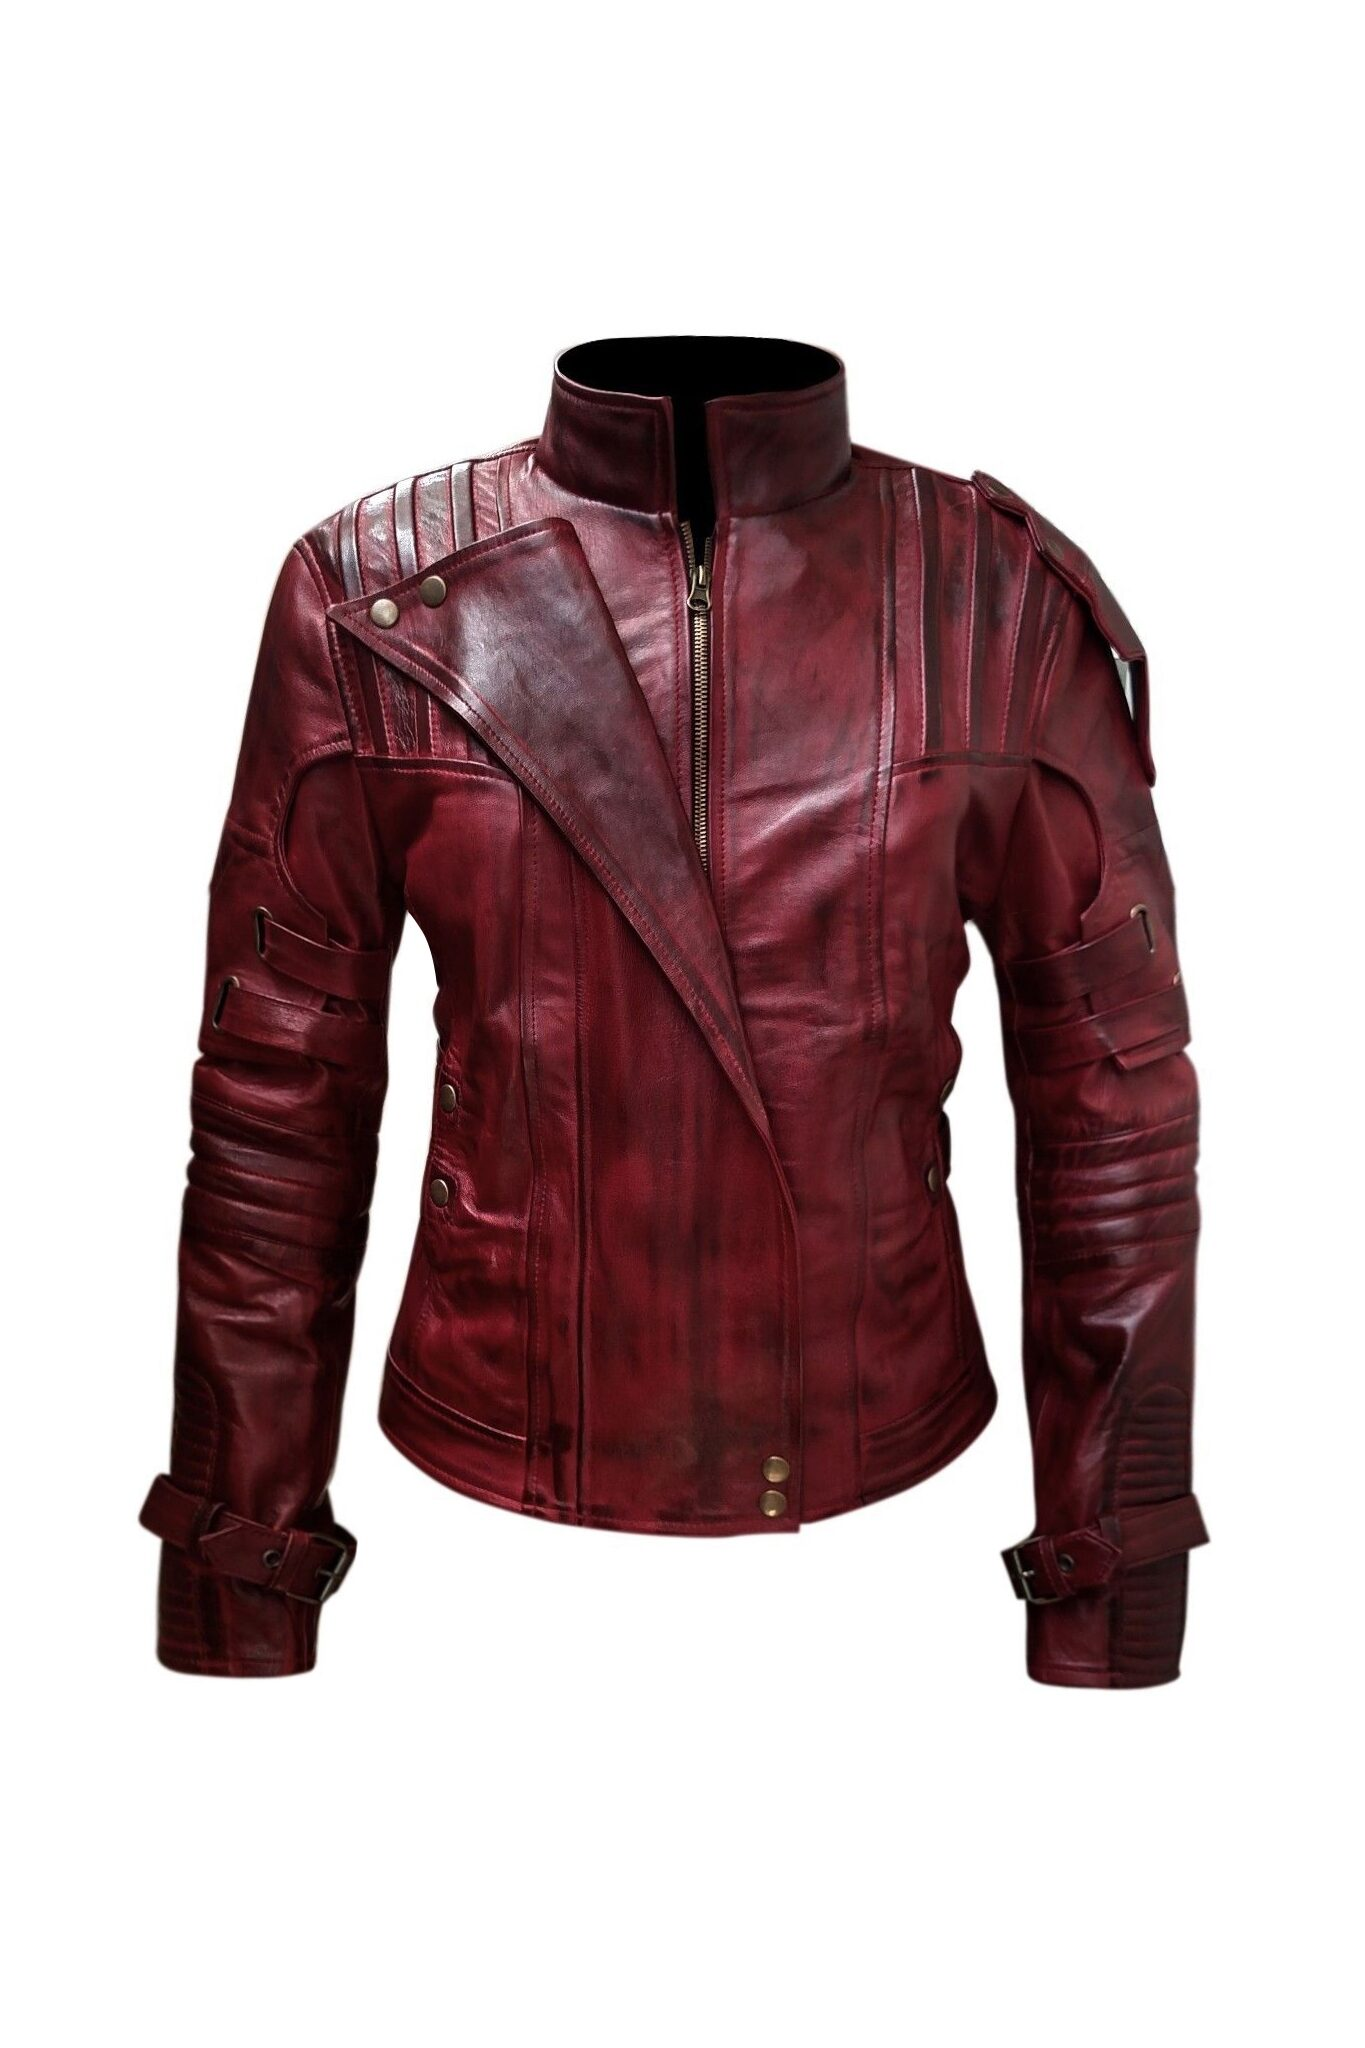 Distressed Maroon Leather Jacket-3-1